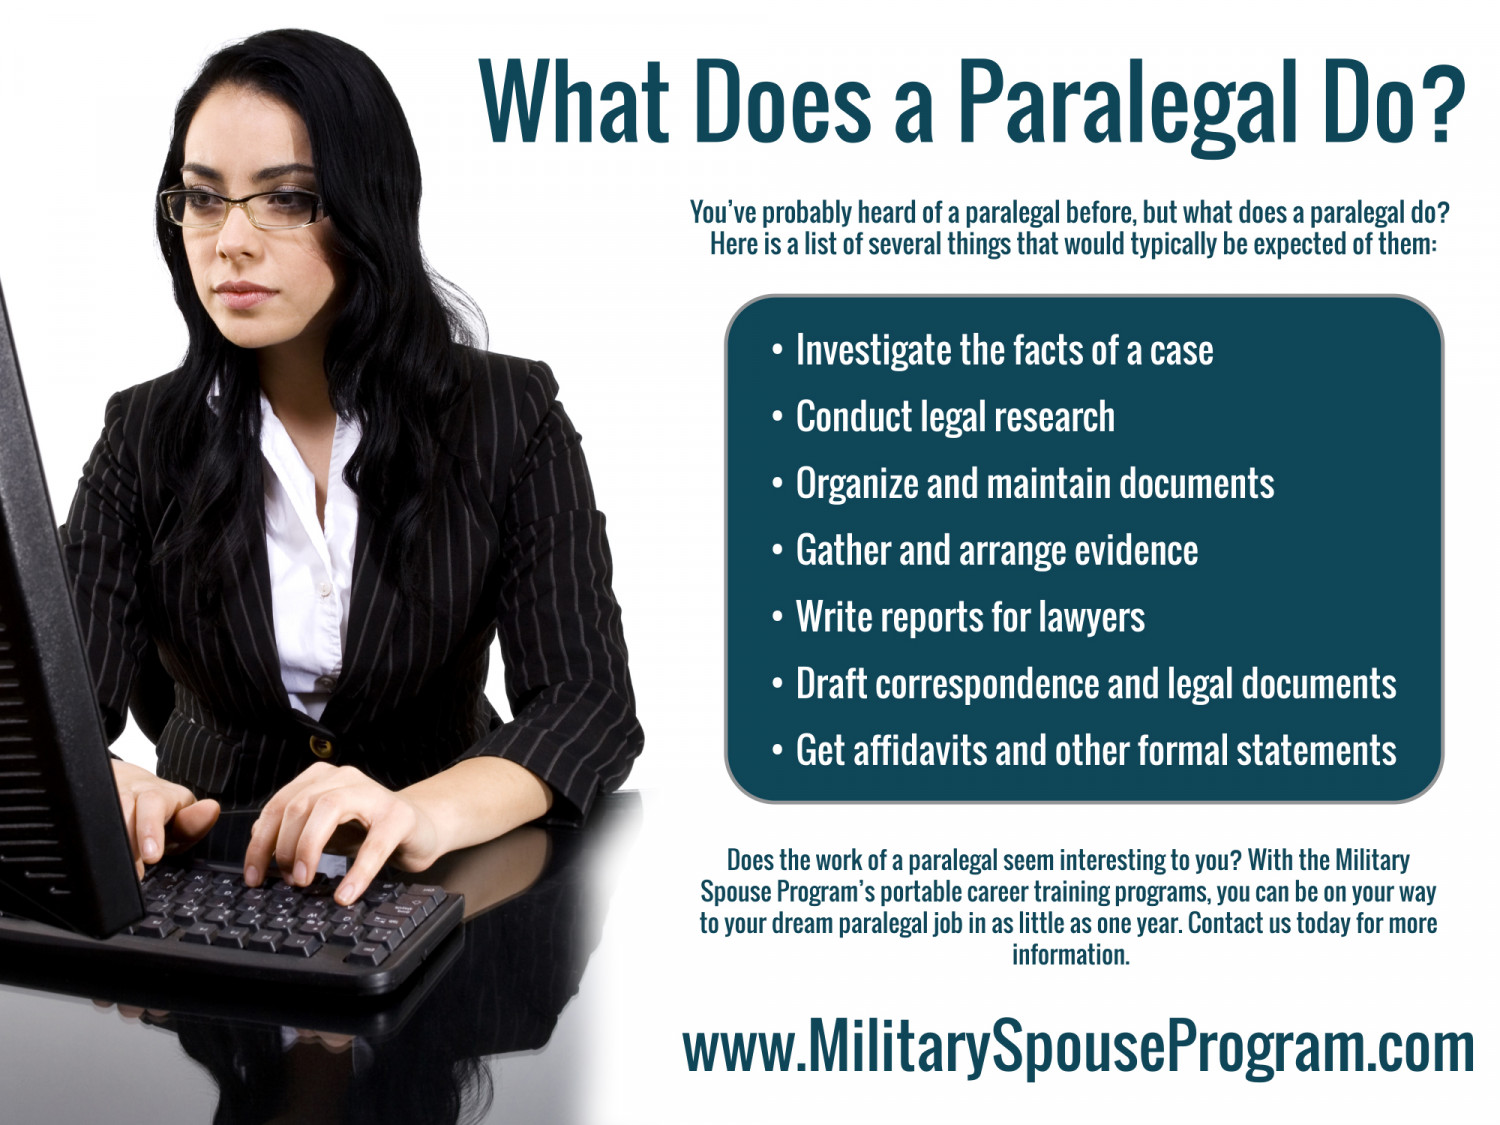 what does a paralegal do visual ly